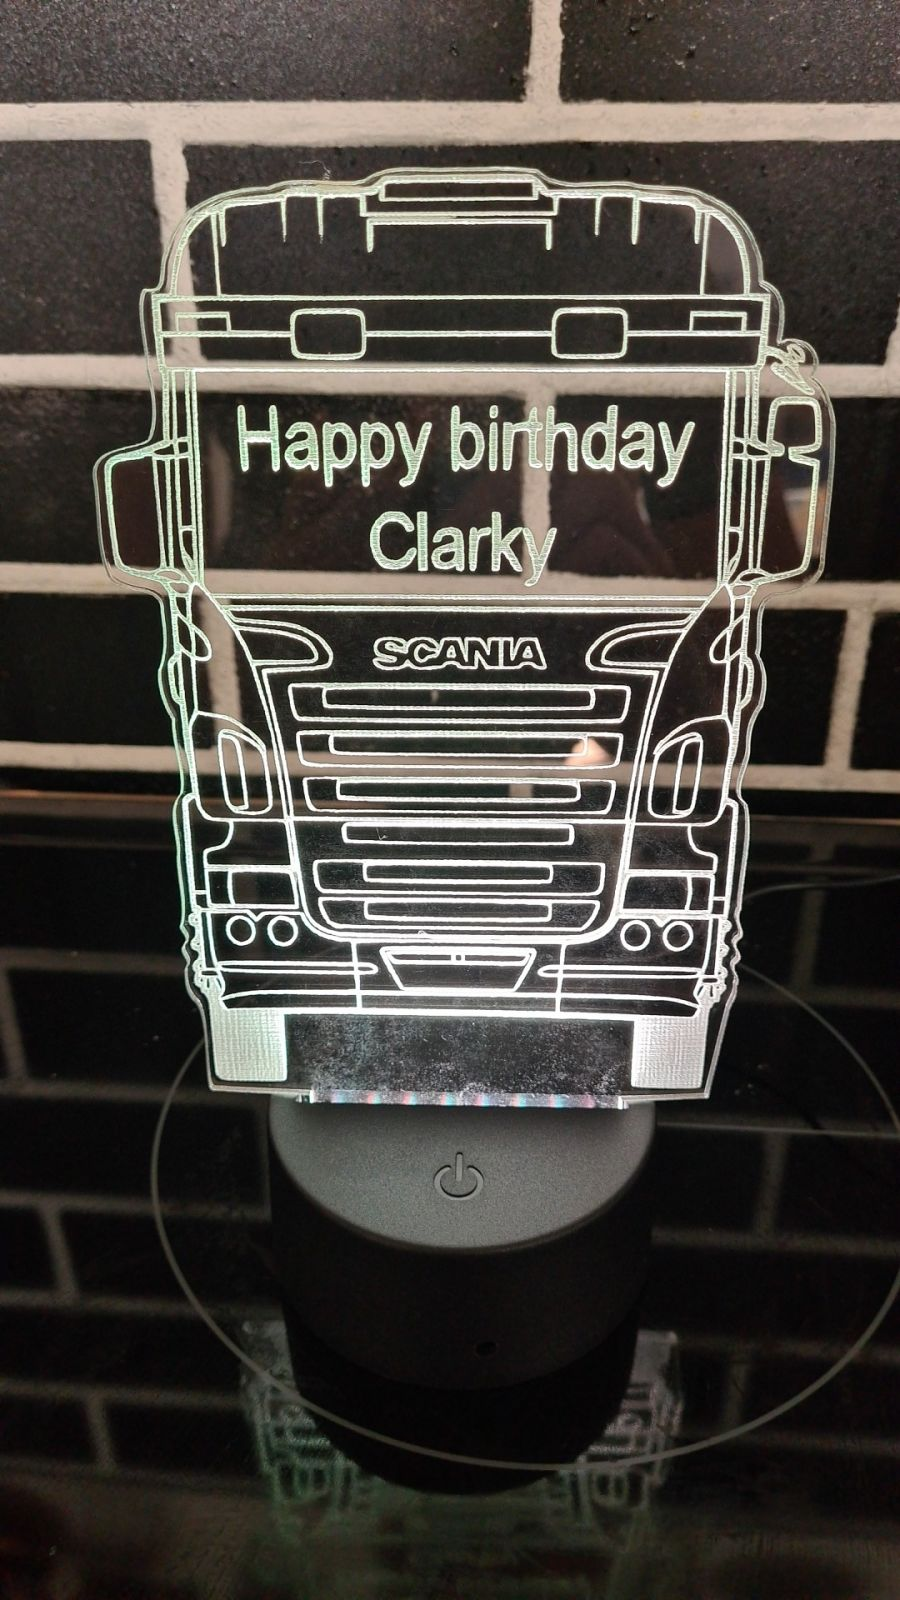 scania truck with wording light up cake topper night light